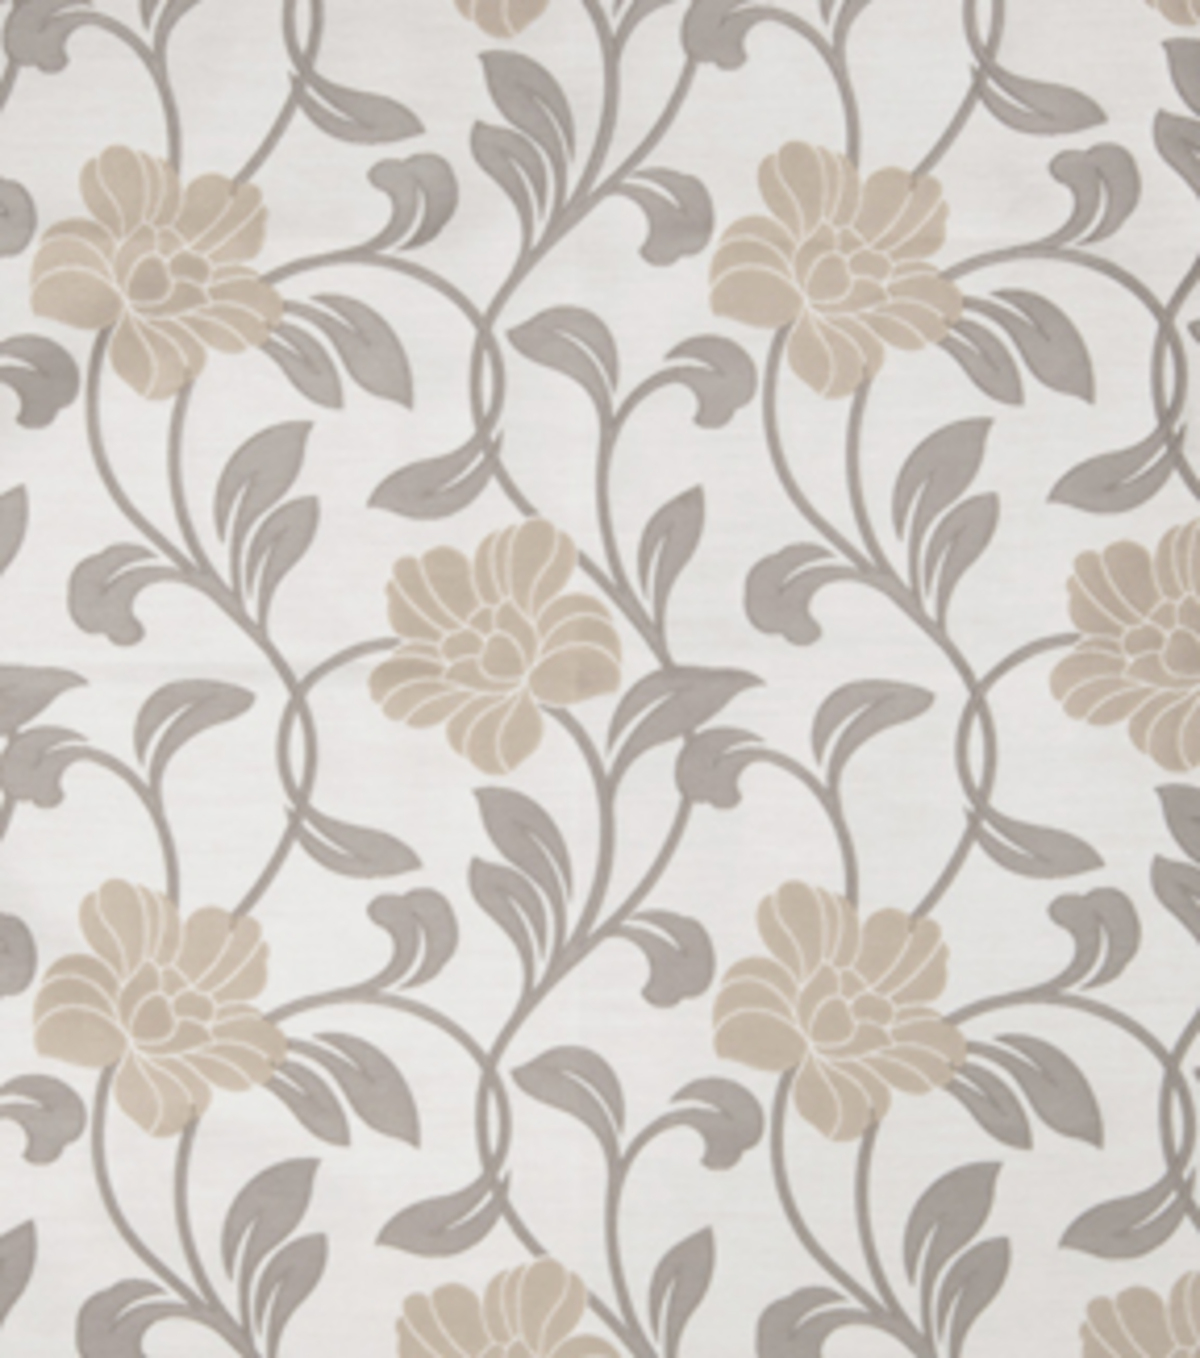 Home Decor 8\u0022x8\u0022 Fabric Swatch-Print Fabric Eaton Square Lloyd Grey